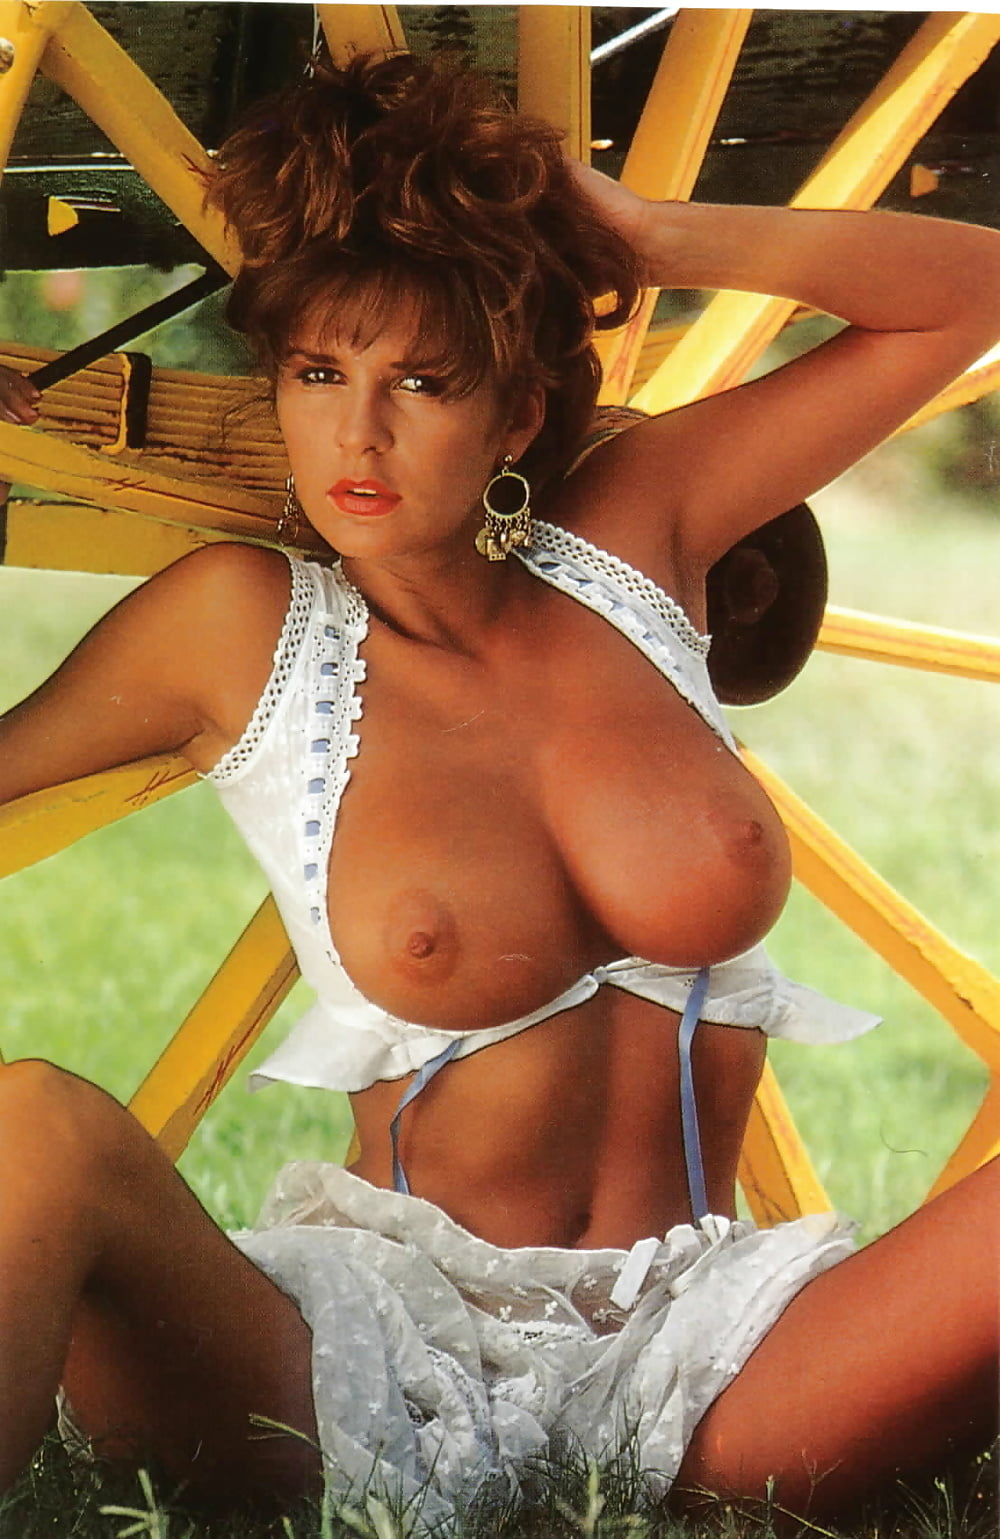 Debbie osborne nude sex cheryl powell and others nude too